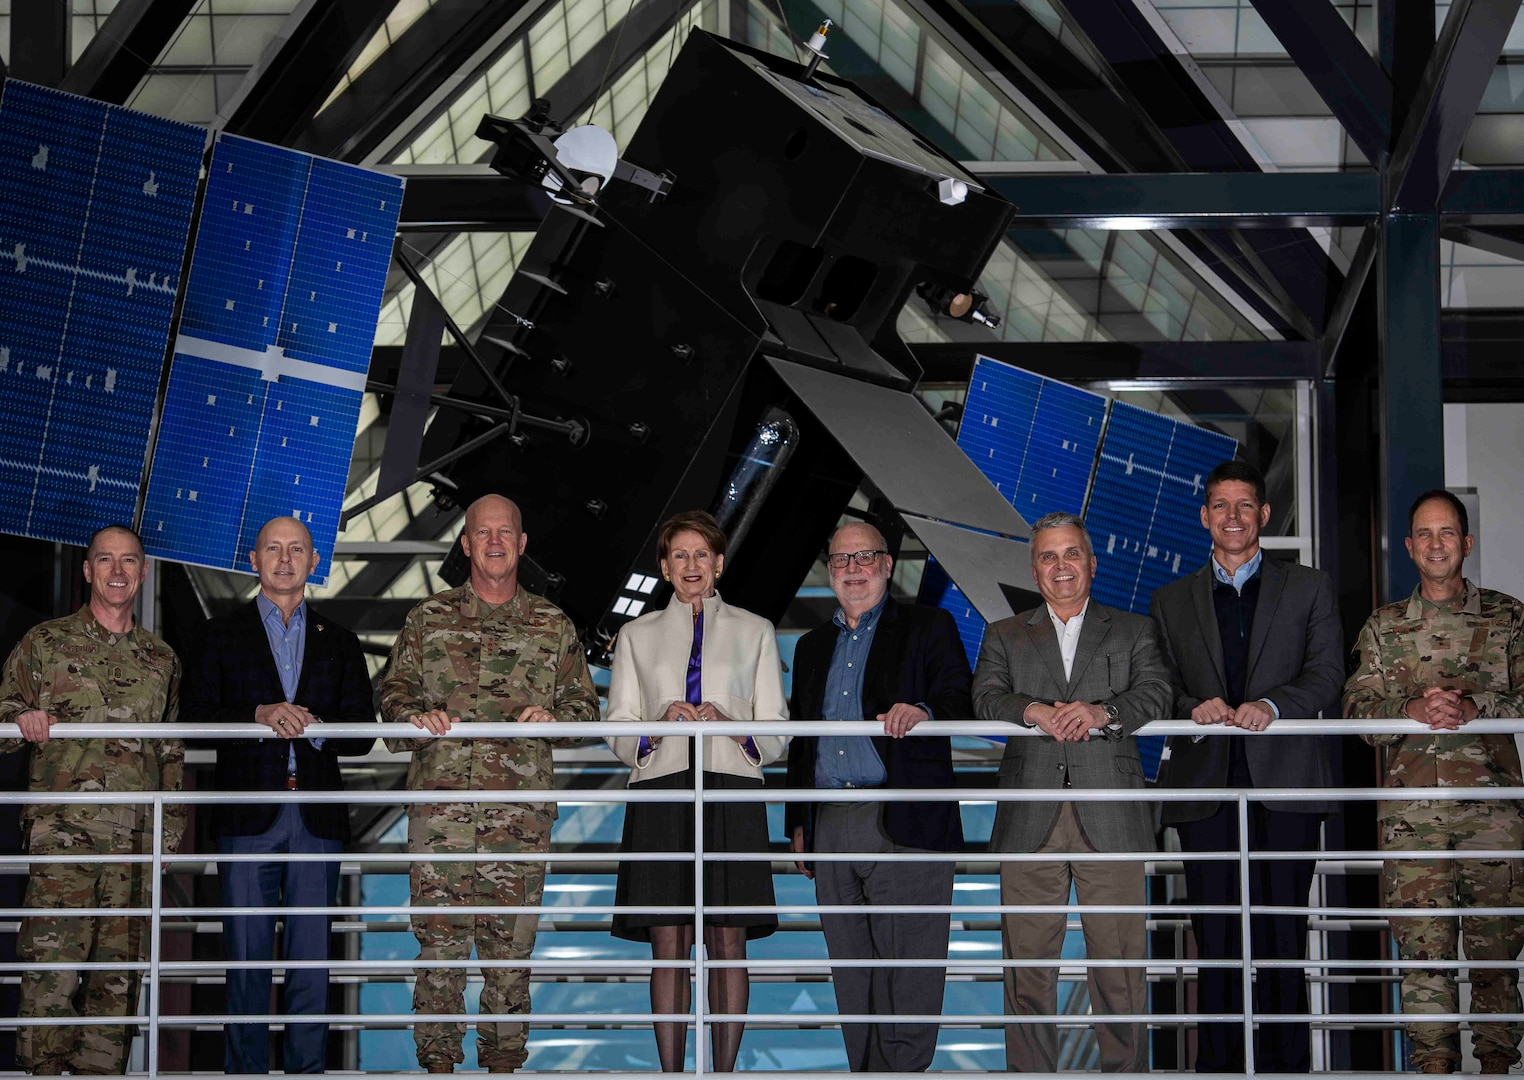 Barbara Barrett, Secretary of the Air Force, met with Gen. Jay Raymond, Commander U.S. Space Command, completing her first official trip to learn about military space operations at Peterson AFB, Nov. 1, 2019. USSPACECOM and AFSPC leaders provided command mission briefings and conducted roundtable discussions with Barrett and more than a dozen military space leaders, some of whom gave mission and training updates. (U.S. Air Force photo by Dave Grim/Released)